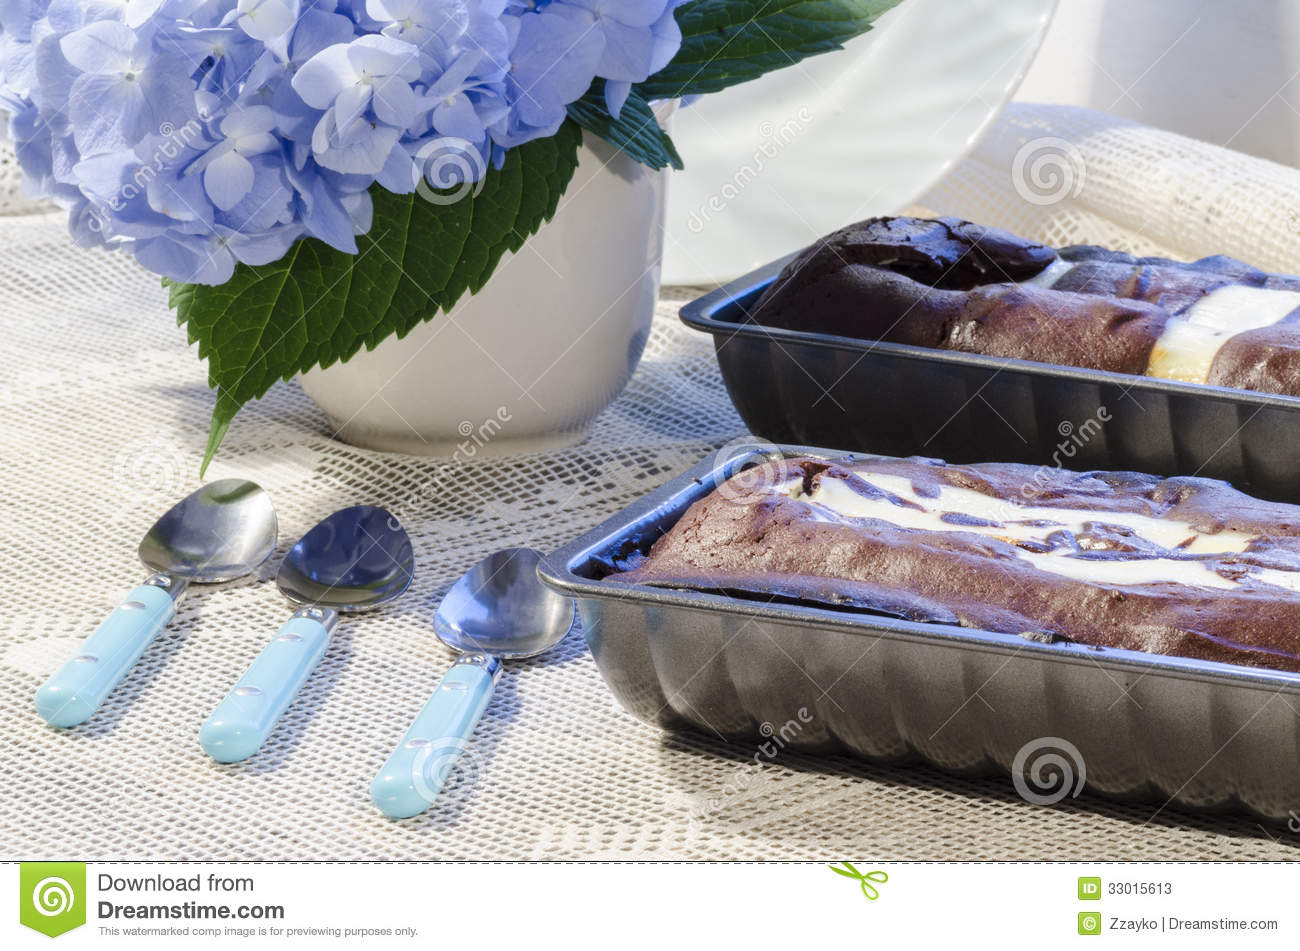 Two chocolate cake in a baking dish